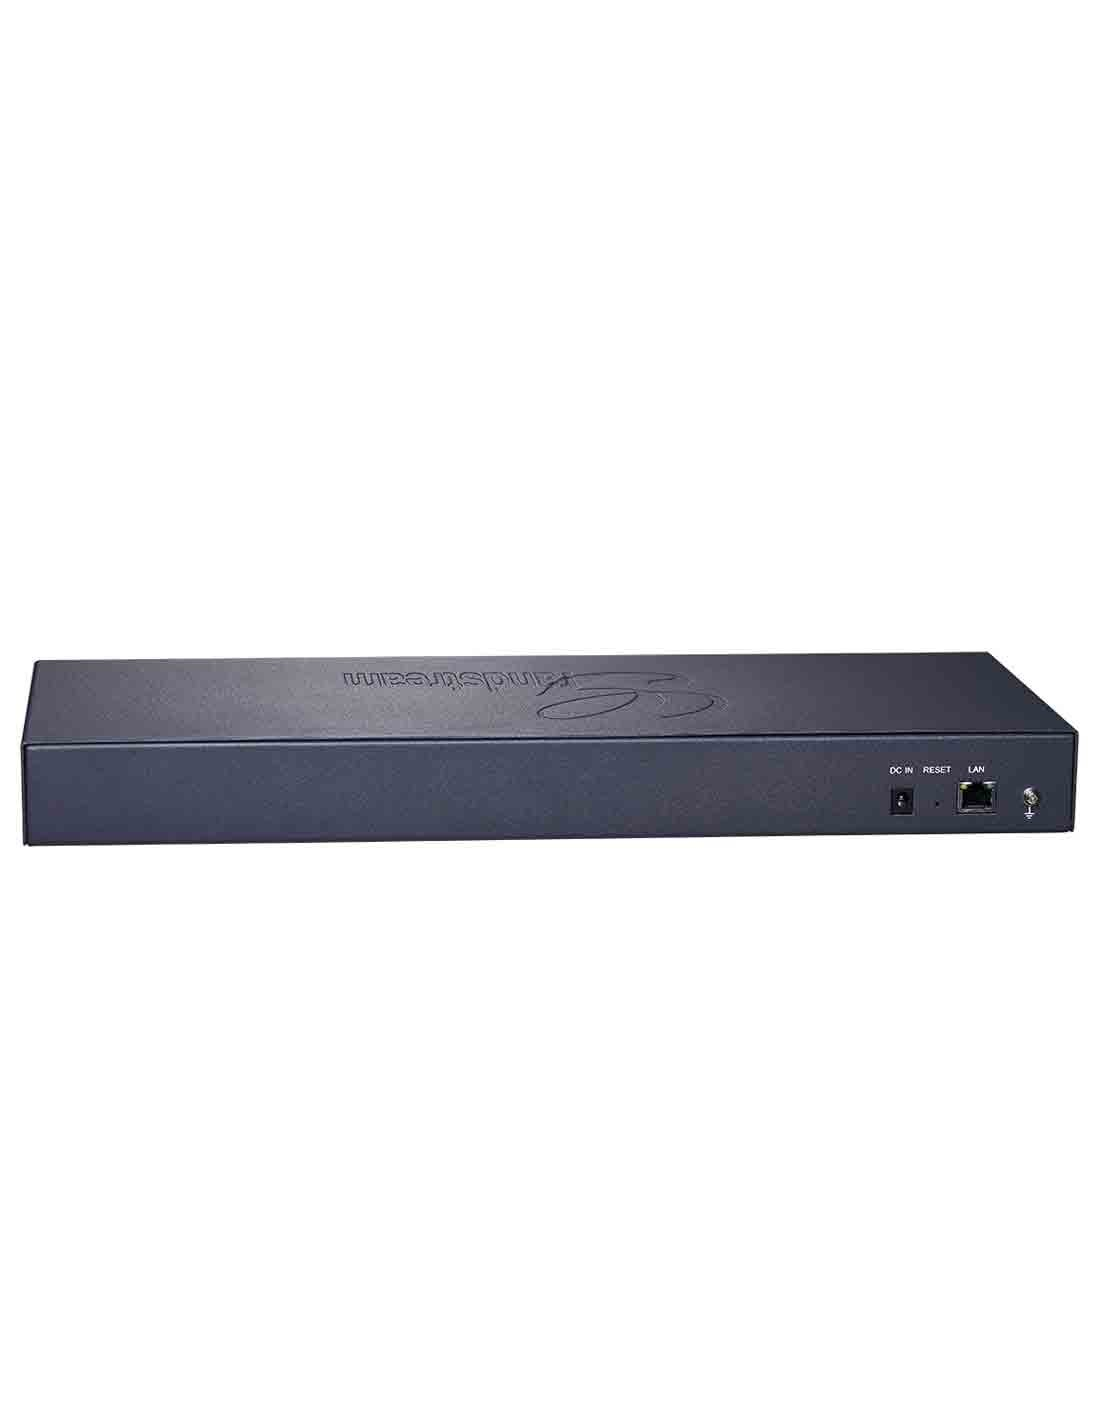 Grandstream UCM6208 IP-PBX up to 800 users, 50 SIP trunk accounts, up to 100 concurrent calls